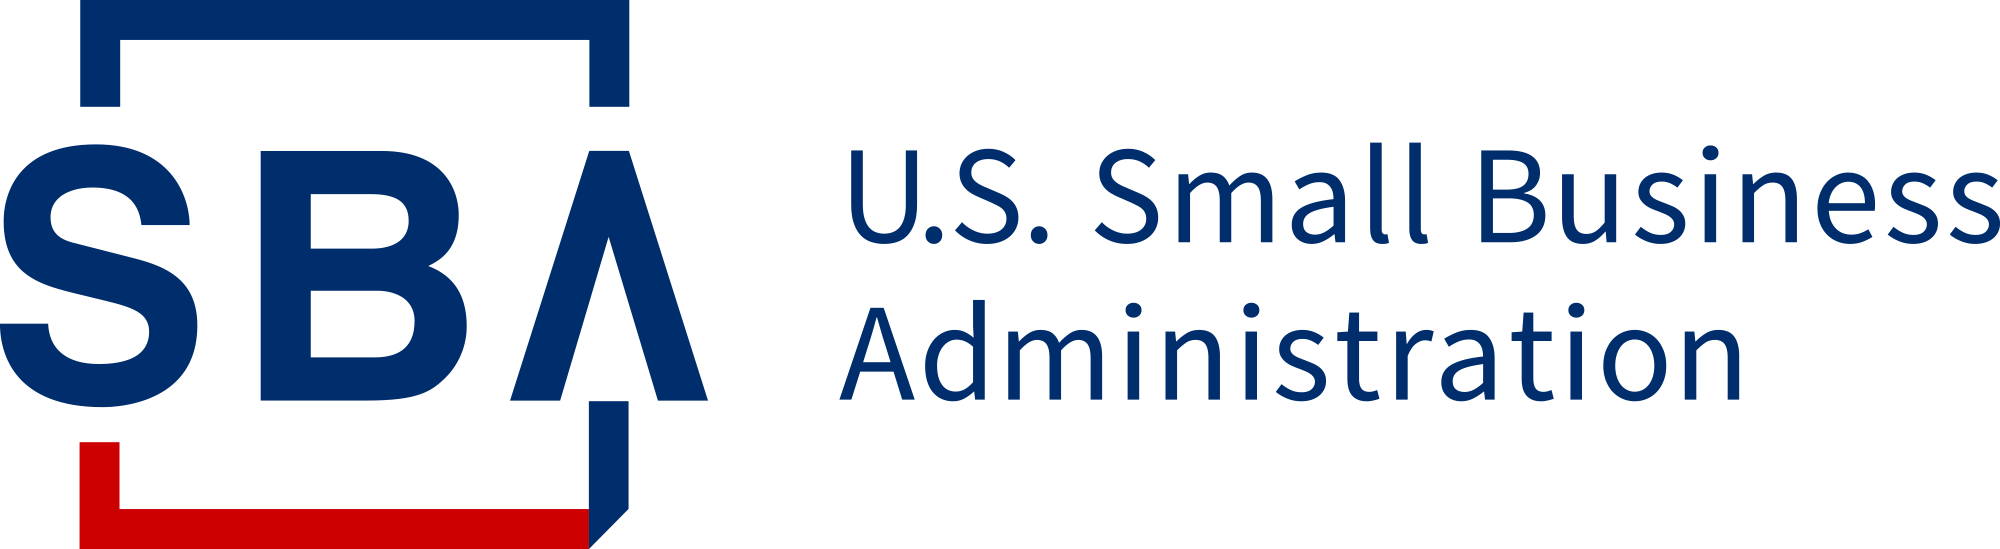 Study Finds 8(a) Program Benefits Businesses By Obtaining Prime Federal Contracts